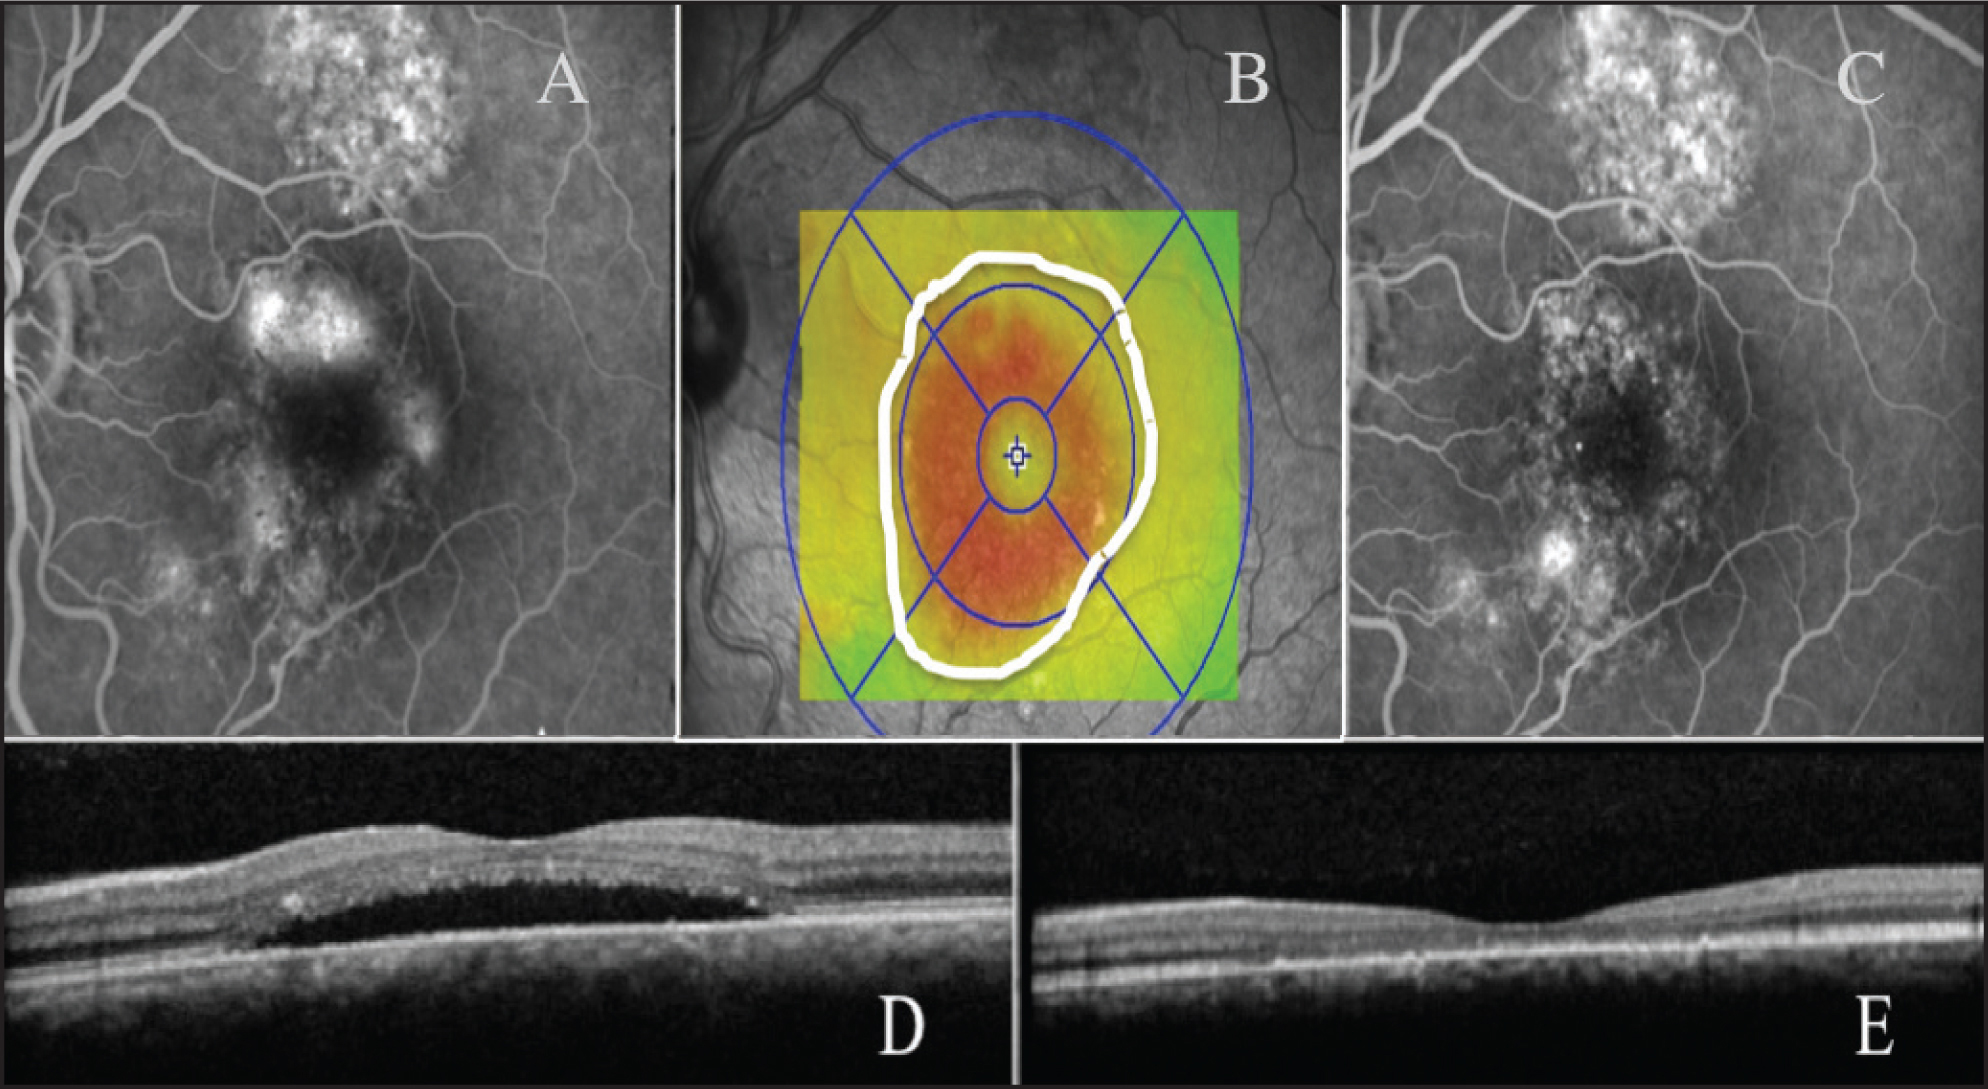 Fluorescein angiography, fundus autofluorescence, and spectral-domain OCT of a treated patient. (A) Fluorescein angiogram at baseline. (B) OCT infrared thickness map illustrating the area of thicker retina corresponding to the detached neurosensory retina, where the laser treatment was performed. (C) Fluorescein angiogram at 3 months. (D) Spectral-domain OCT at baseline. (E) Spectral-domain OCT at 3 months.